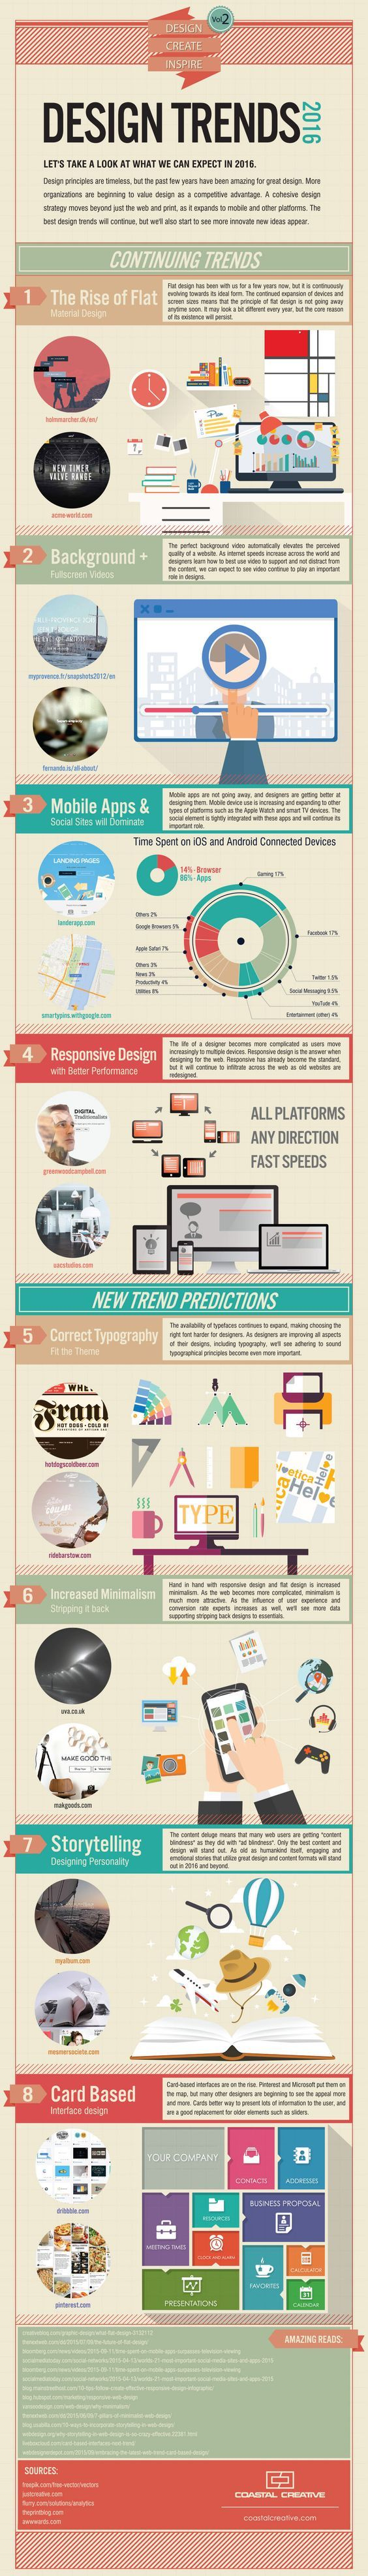 [INFOGRAPHIC] 8 Web Design Trends That Are Bound to Be Huge in 2016—Flat; Backgrounds; Mobile; Responsive; Type; Minimalism; Storytelling; Cards; Details>: